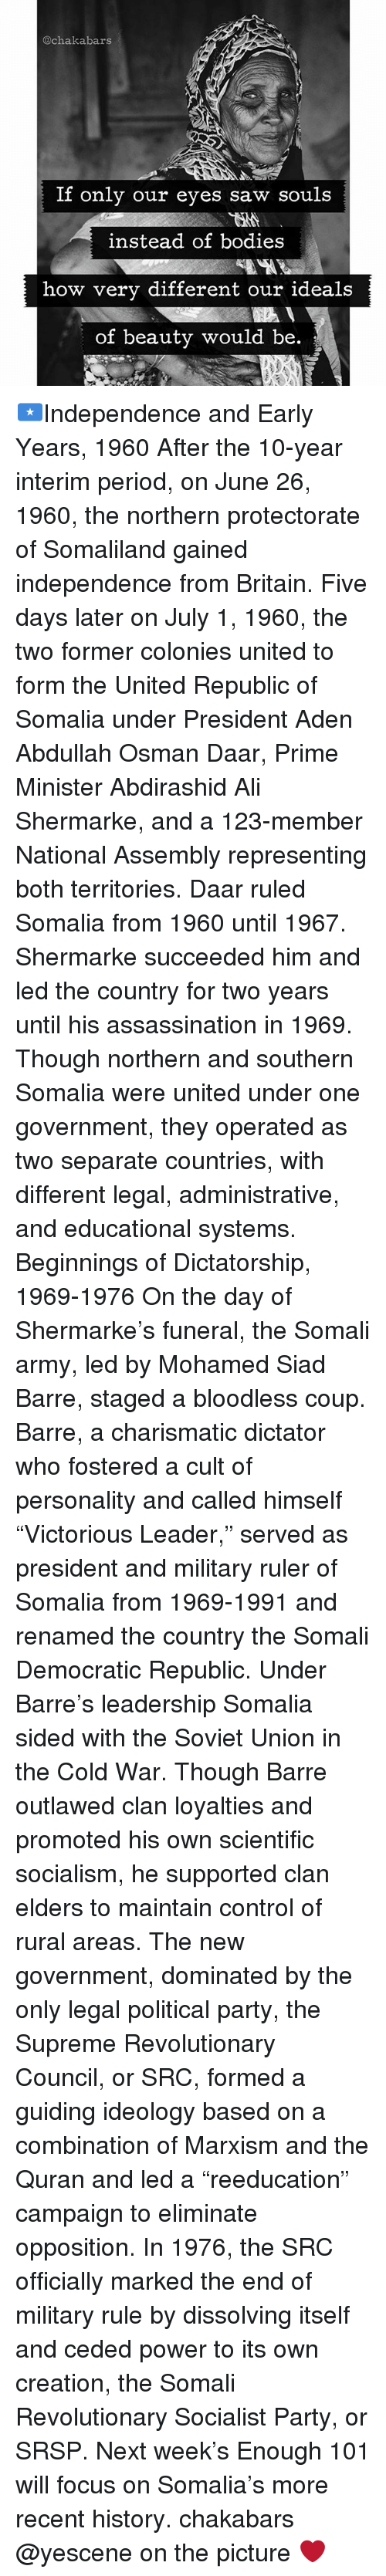 """Ali, Assassination, and Bodies : @ch akabars  If only our eyes saw souls  instead of bodies  how very different our ideals  of beauty would be 🇸🇴Independence and Early Years, 1960 After the 10-year interim period, on June 26, 1960, the northern protectorate of Somaliland gained independence from Britain. Five days later on July 1, 1960, the two former colonies united to form the United Republic of Somalia under President Aden Abdullah Osman Daar, Prime Minister Abdirashid Ali Shermarke, and a 123-member National Assembly representing both territories. Daar ruled Somalia from 1960 until 1967. Shermarke succeeded him and led the country for two years until his assassination in 1969. Though northern and southern Somalia were united under one government, they operated as two separate countries, with different legal, administrative, and educational systems. Beginnings of Dictatorship, 1969-1976 On the day of Shermarke's funeral, the Somali army, led by Mohamed Siad Barre, staged a bloodless coup. Barre, a charismatic dictator who fostered a cult of personality and called himself """"Victorious Leader,"""" served as president and military ruler of Somalia from 1969-1991 and renamed the country the Somali Democratic Republic. Under Barre's leadership Somalia sided with the Soviet Union in the Cold War. Though Barre outlawed clan loyalties and promoted his own scientific socialism, he supported clan elders to maintain control of rural areas. The new government, dominated by the only legal political party, the Supreme Revolutionary Council, or SRC, formed a guiding ideology based on a combination of Marxism and the Quran and led a """"reeducation"""" campaign to eliminate opposition. In 1976, the SRC officially marked the end of military rule by dissolving itself and ceded power to its own creation, the Somali Revolutionary Socialist Party, or SRSP. Next week's Enough 101 will focus on Somalia's more recent history. chakabars @yescene on the picture ❤"""